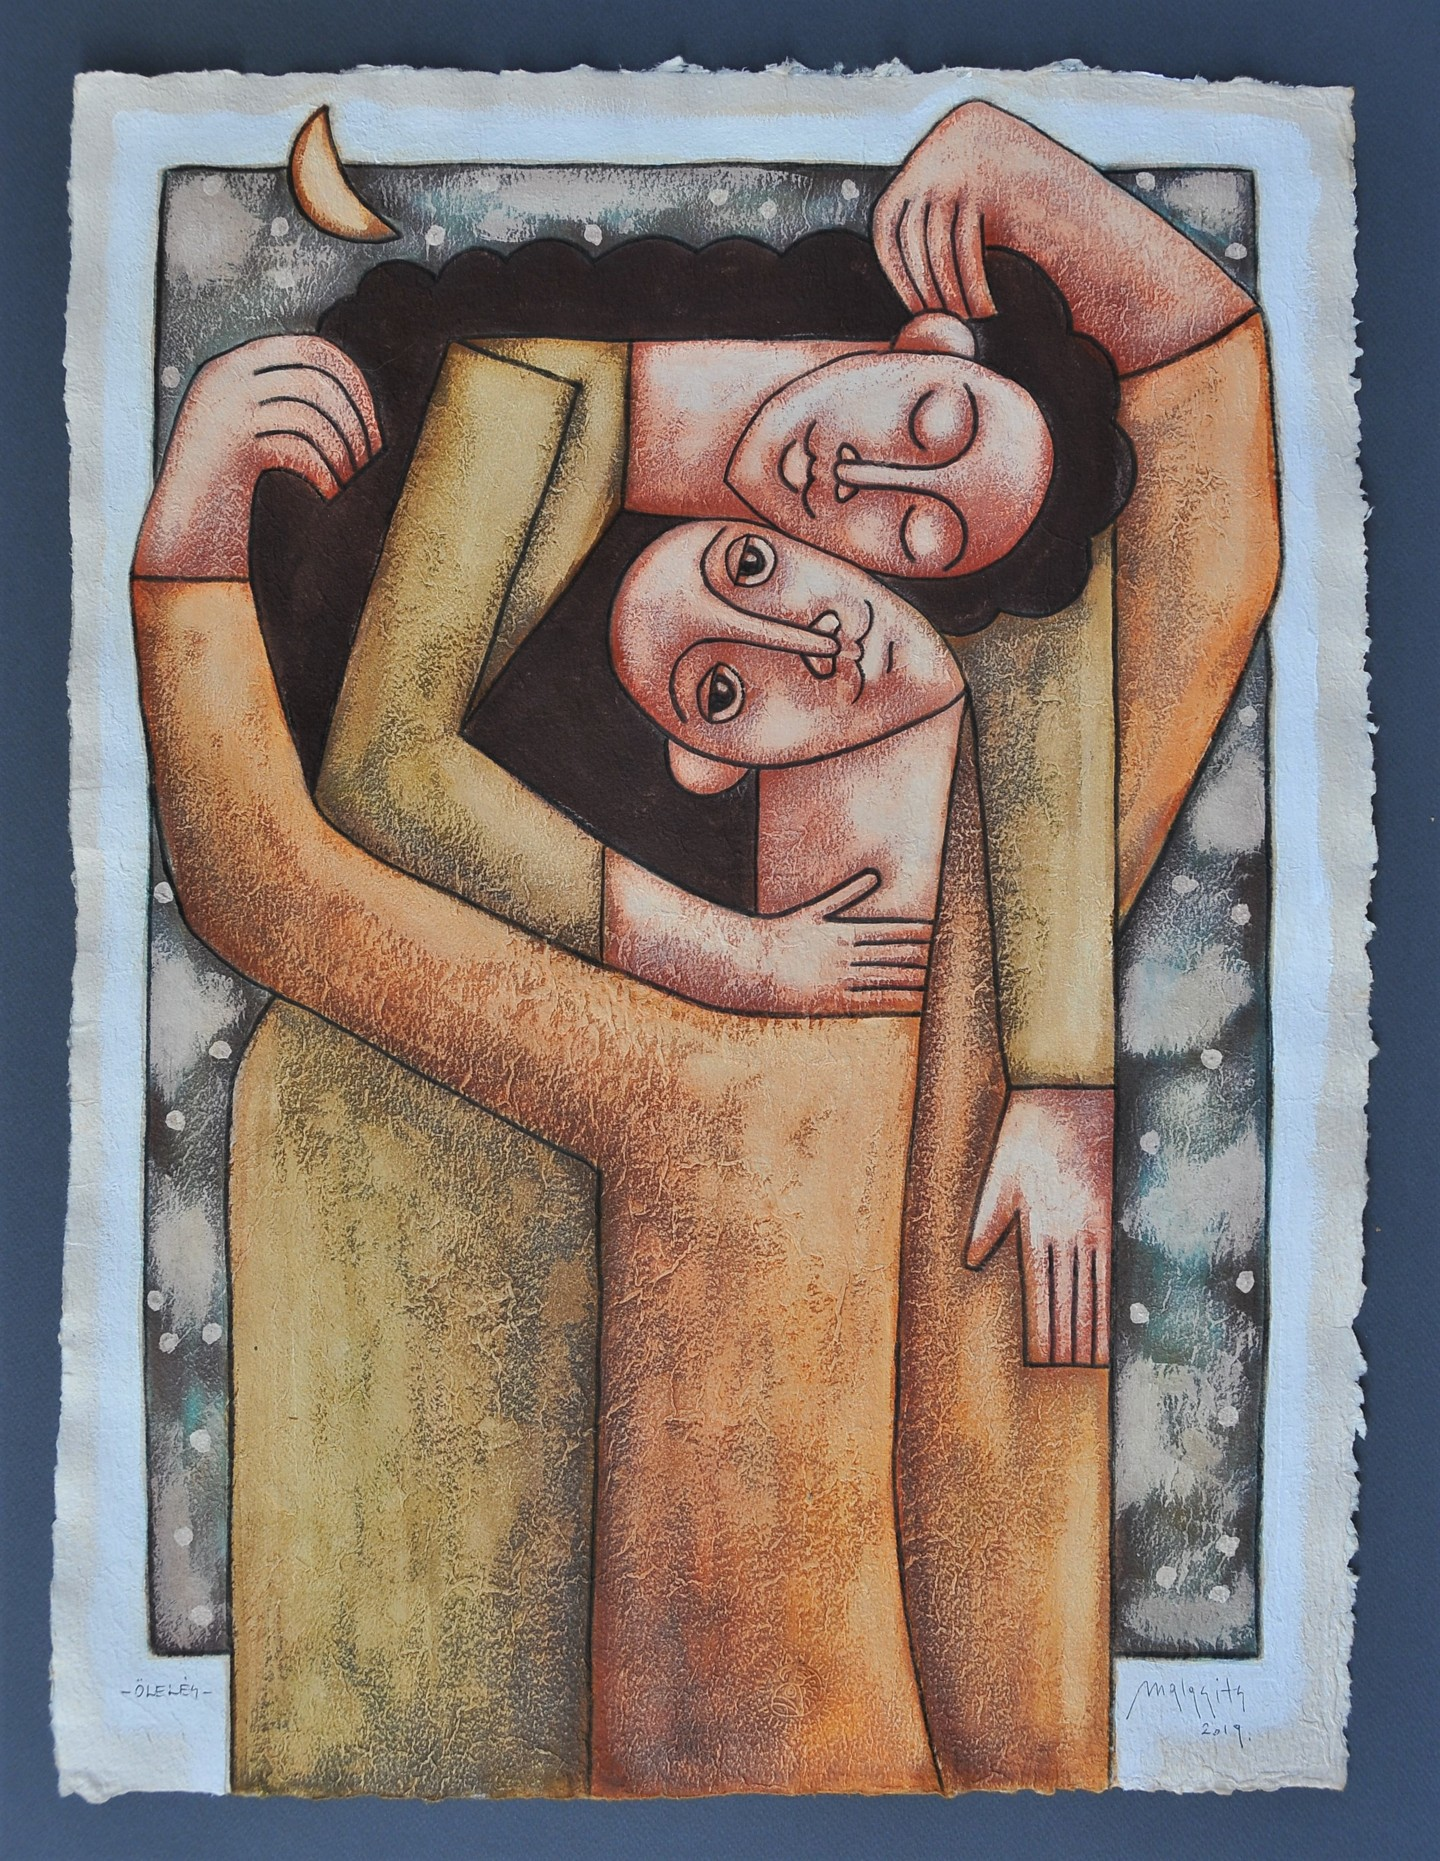 Zsolt Malasits - The embrace of love